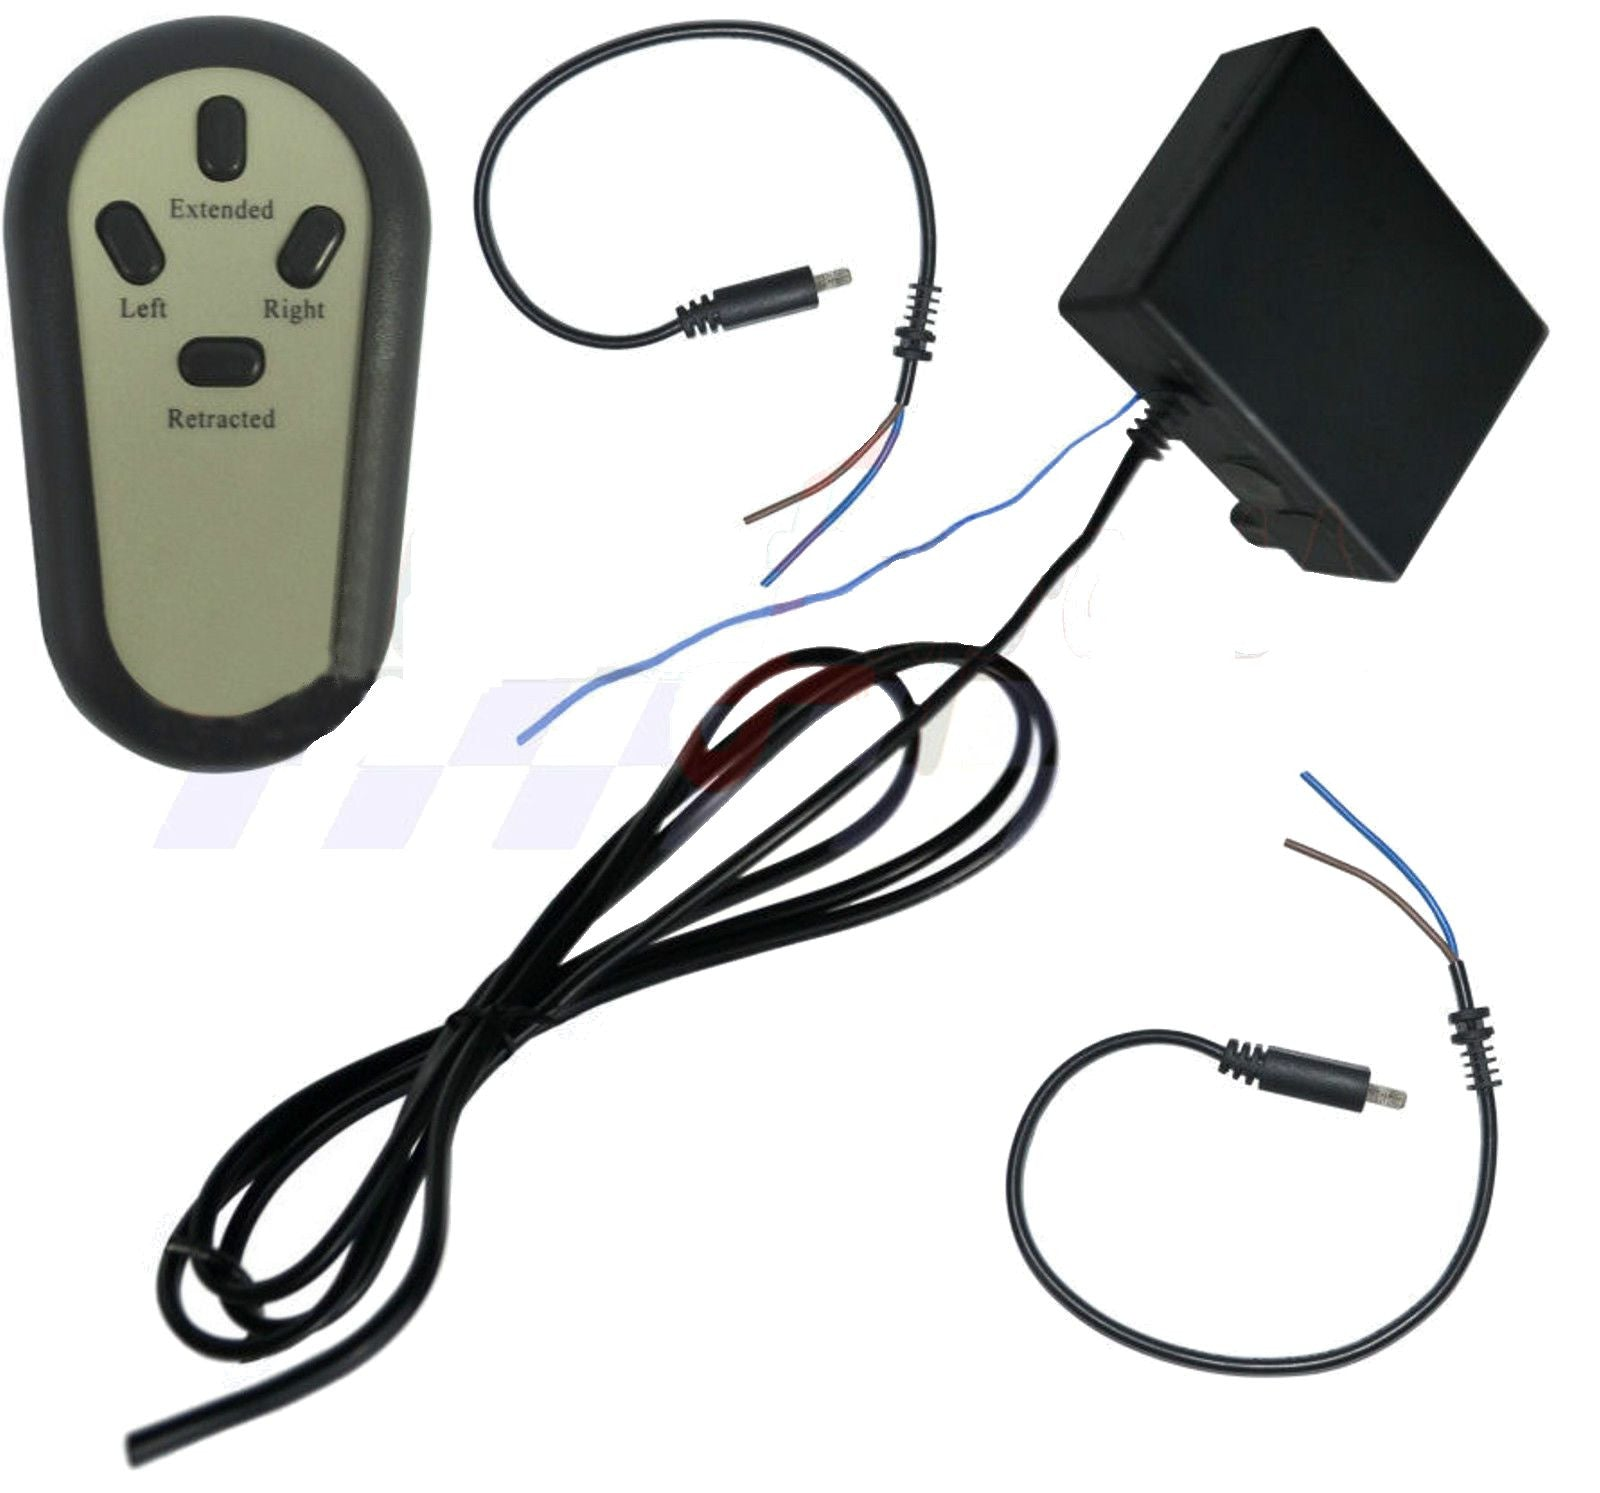 NEW Wireless Remote Control Wiring and Switch for 2 Linear Actuators